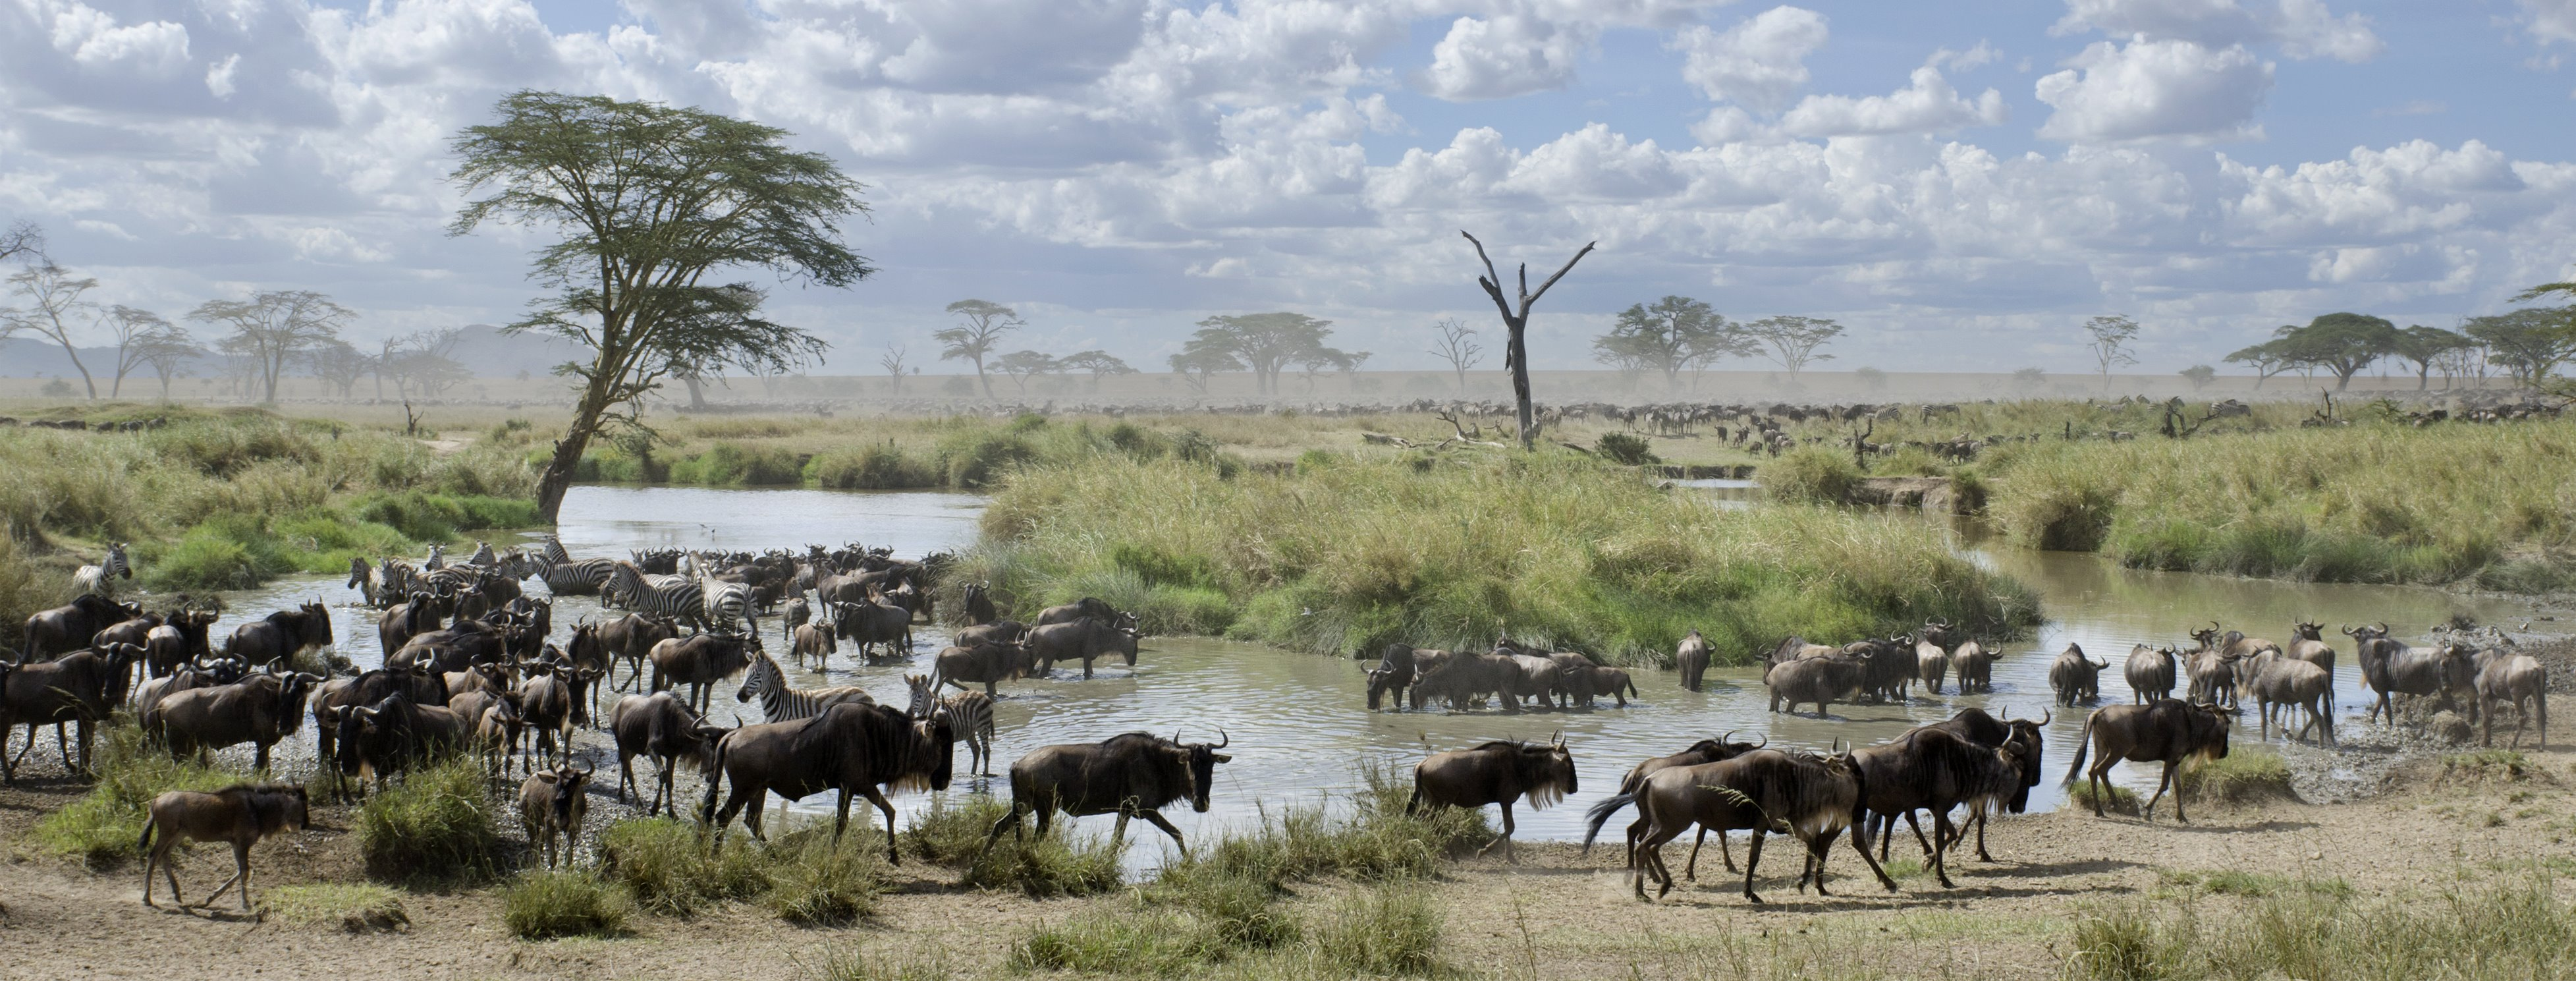 The 2019 wish-list (continued): Tanzania's time to shine